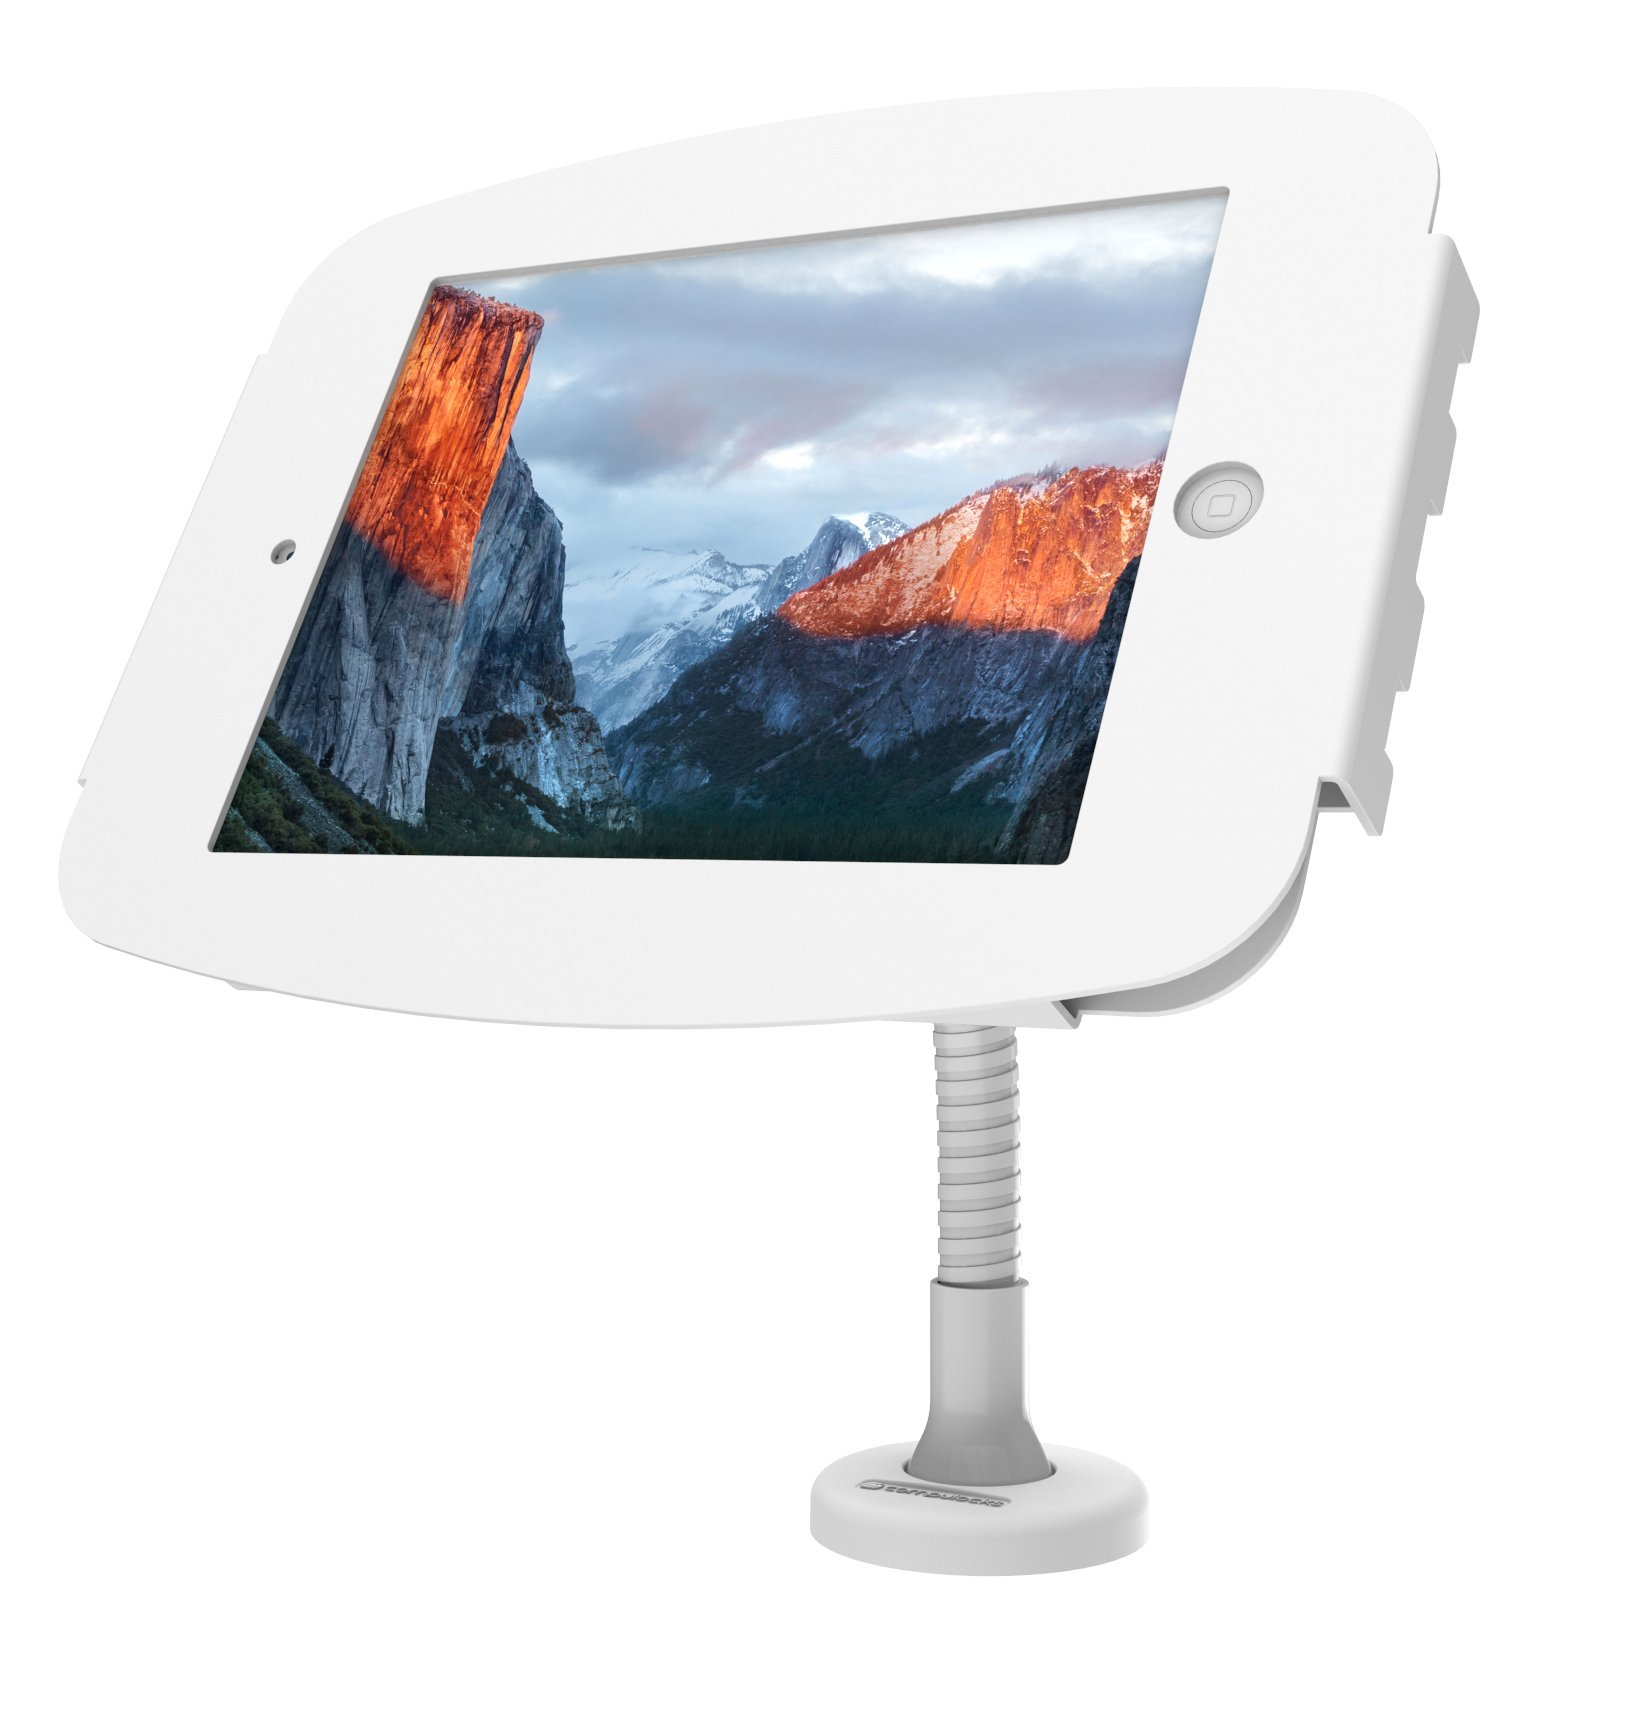 Maclocks 159W290SENW Space Enclosure With Flexible Arm for iPad Pro 12.9 (White)